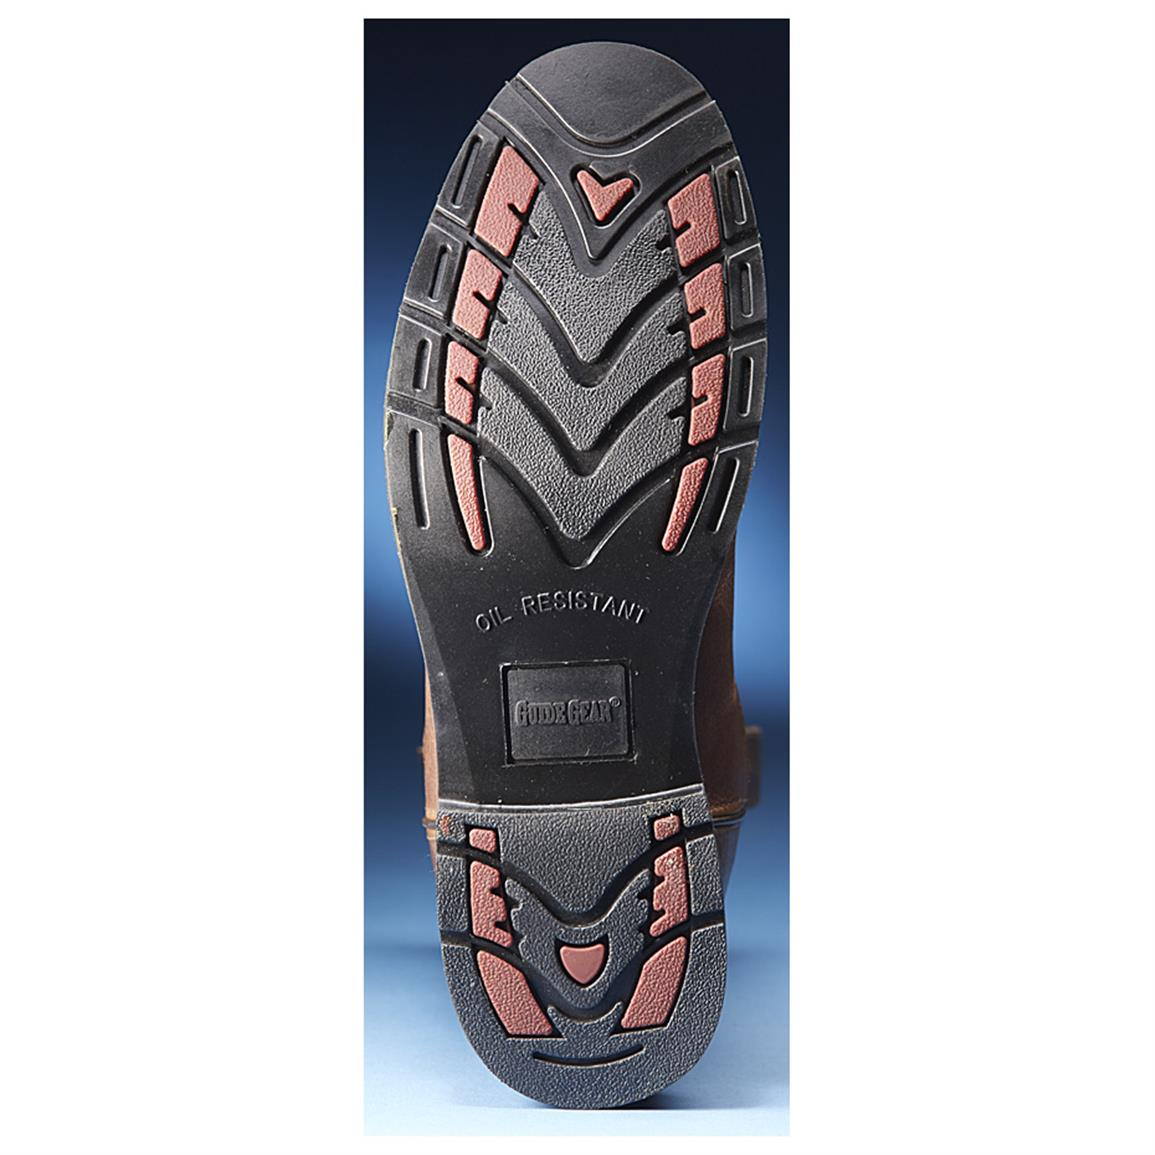 Sure-grip, oil-resistant polyurethane outsole